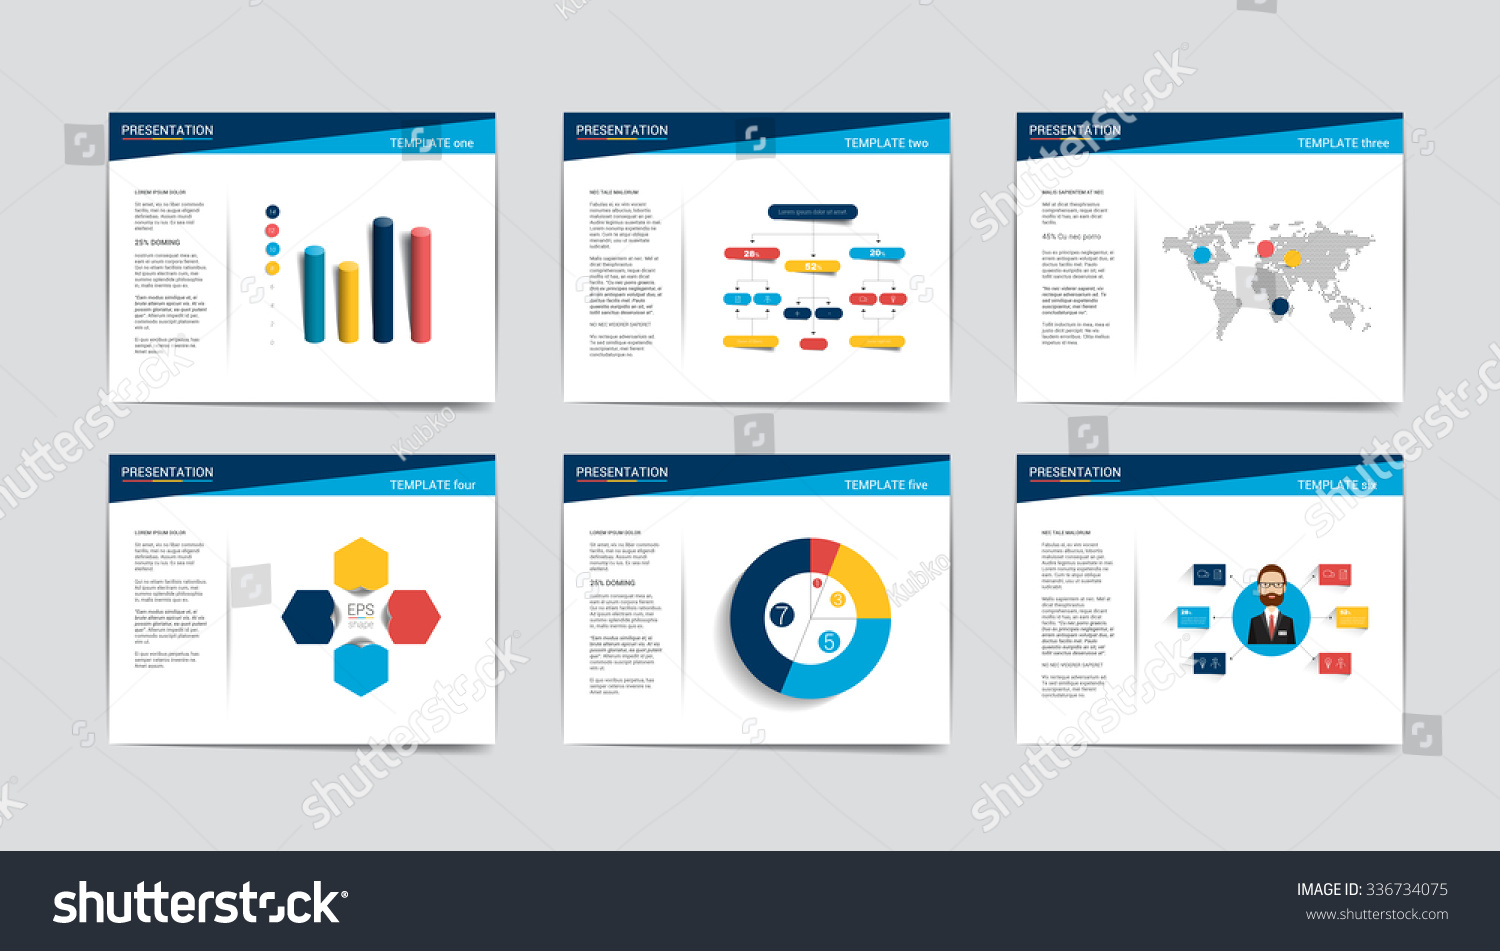 6 presentation business templates Infographics for leaflet poster slide magazine book brochure website print